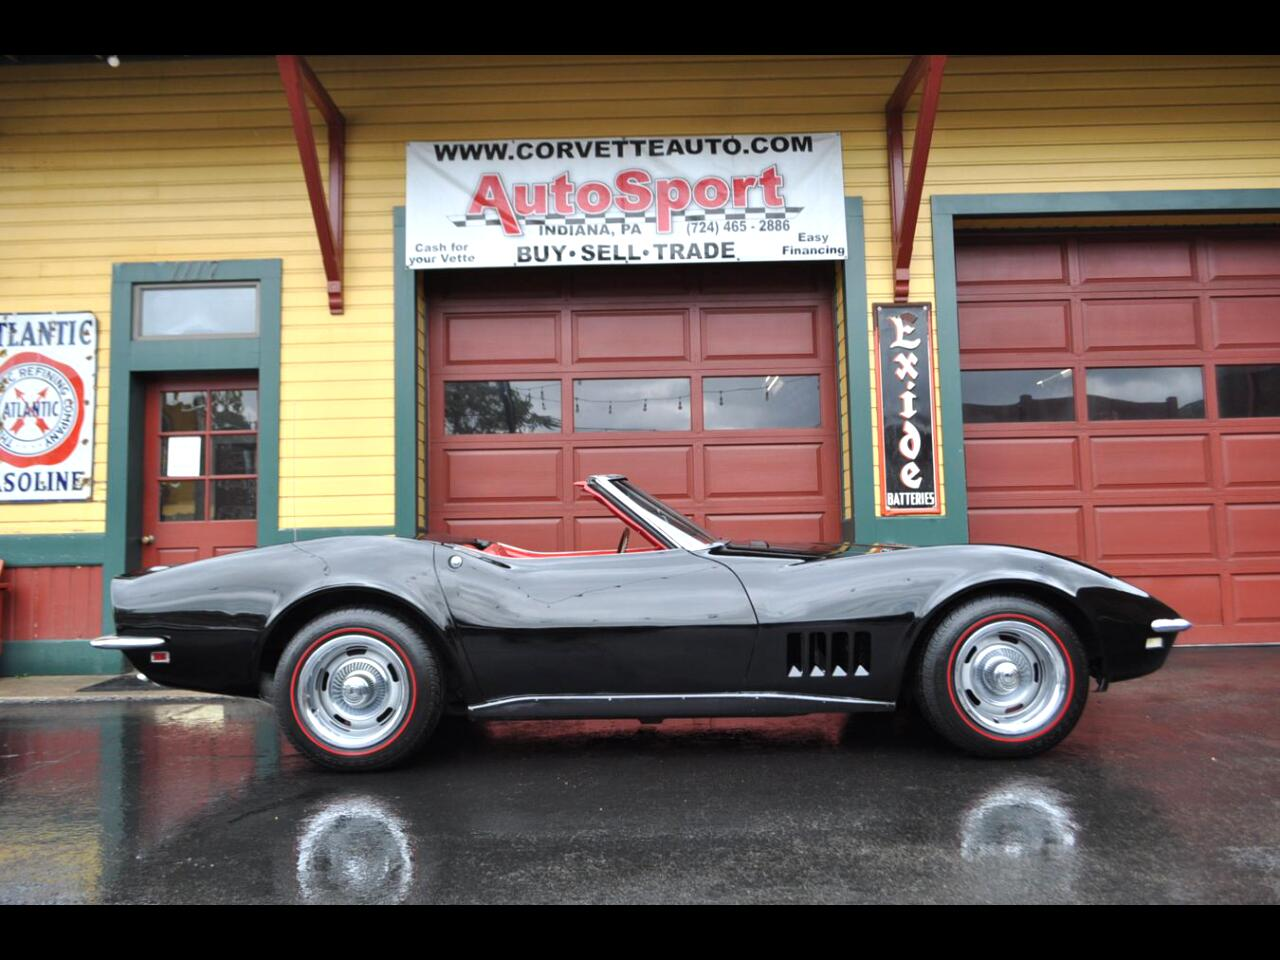 1968 Chevrolet Corvette Extremely Rare Tuxedo Black/Red 350hp #'s Matching